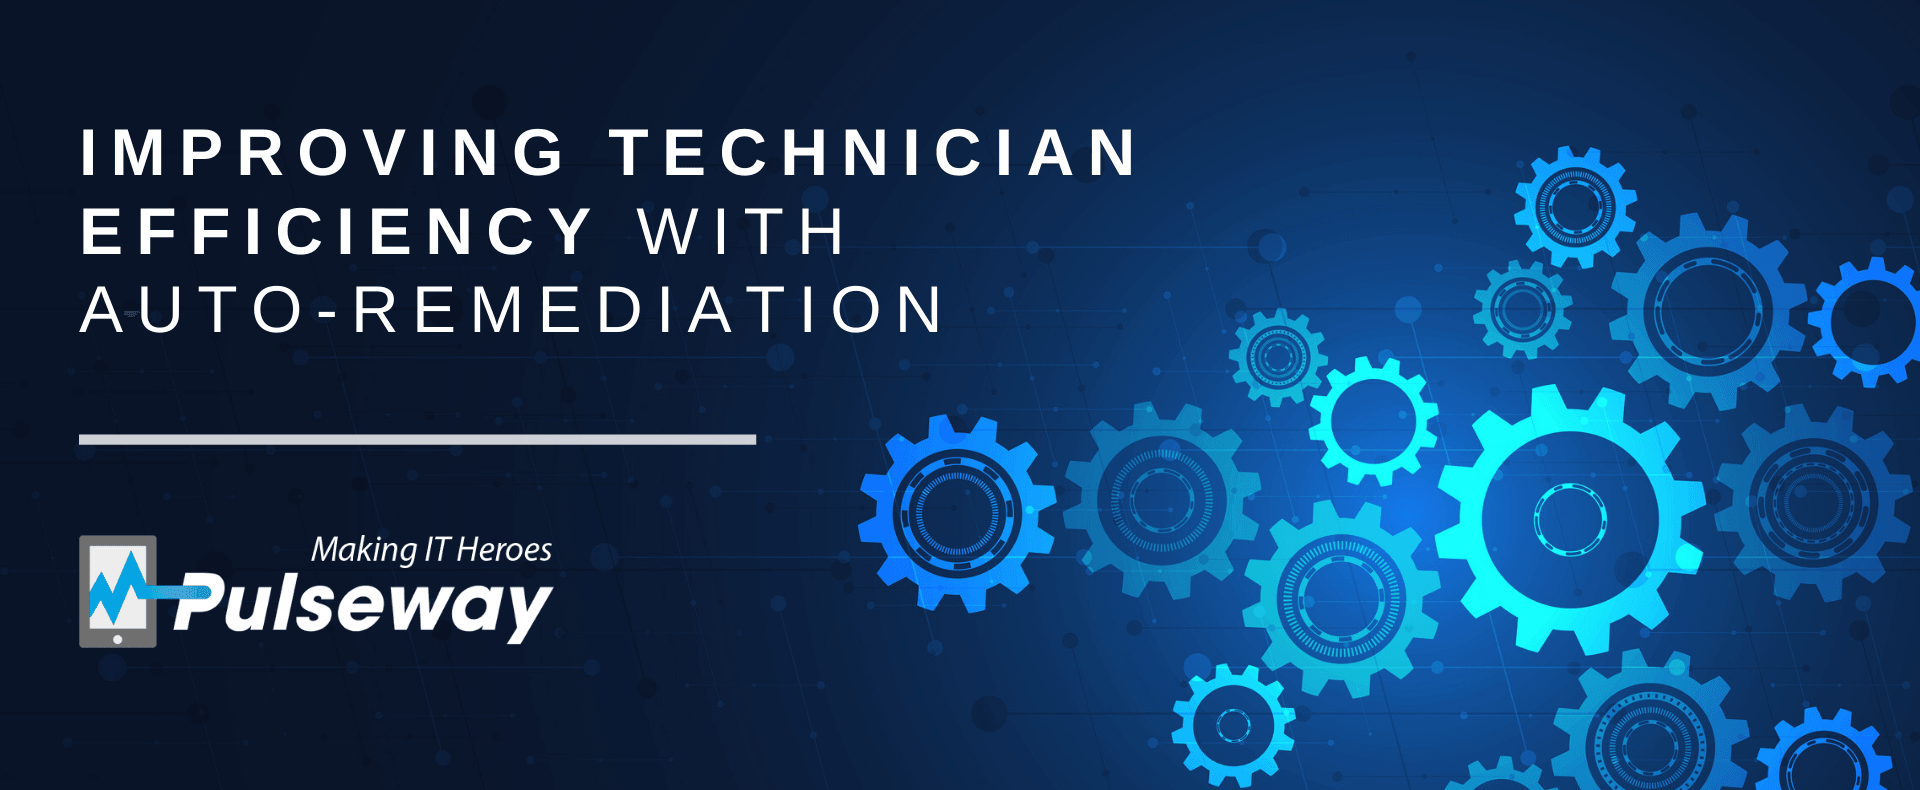 Improving Technician Efficiency with Auto-Remediation